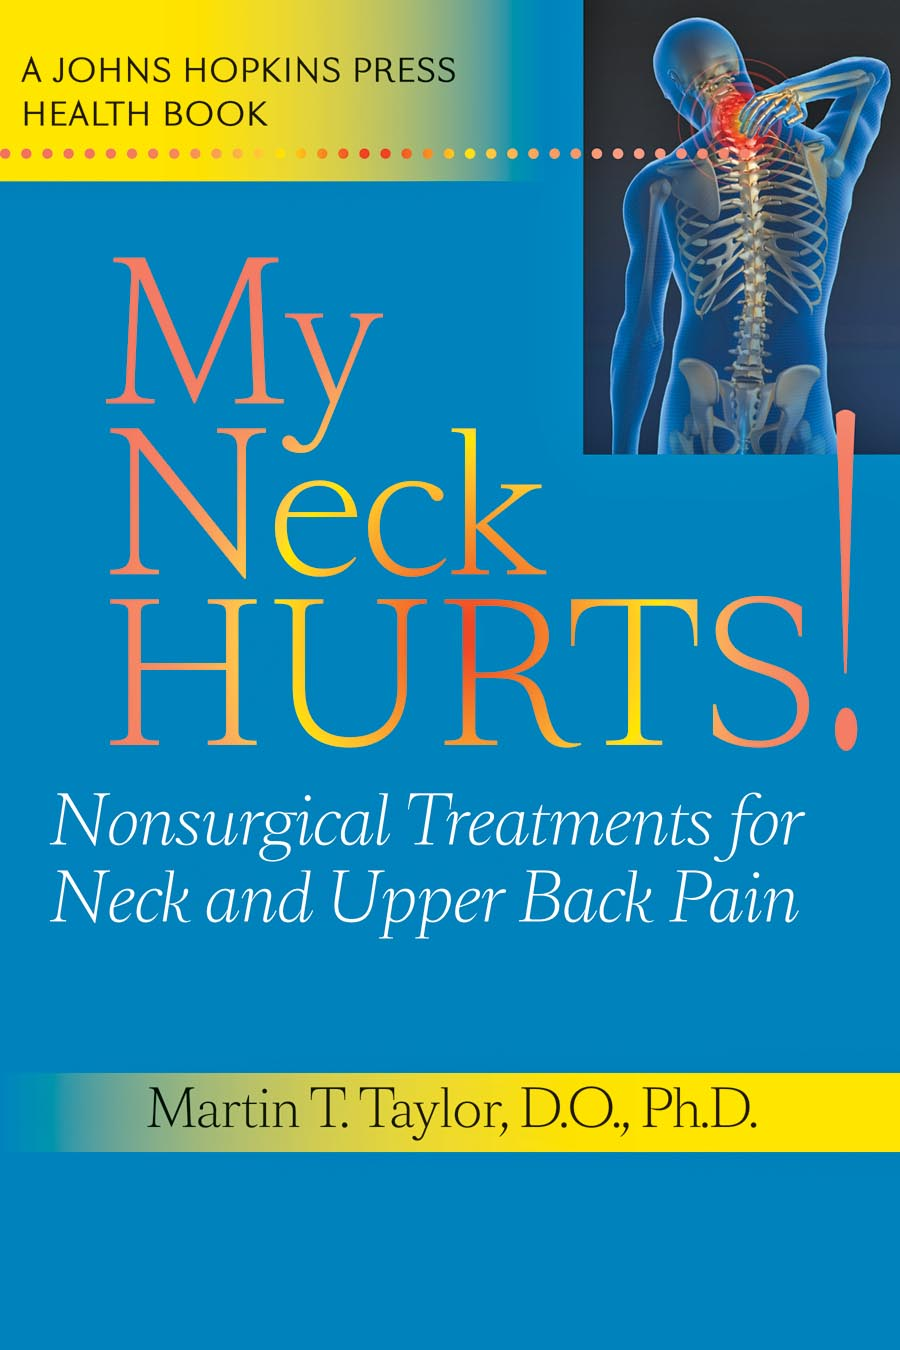 My Neck Hurts! – Nonsurgical Treatments for Neck and Upper Back Pain hurts hurts exile